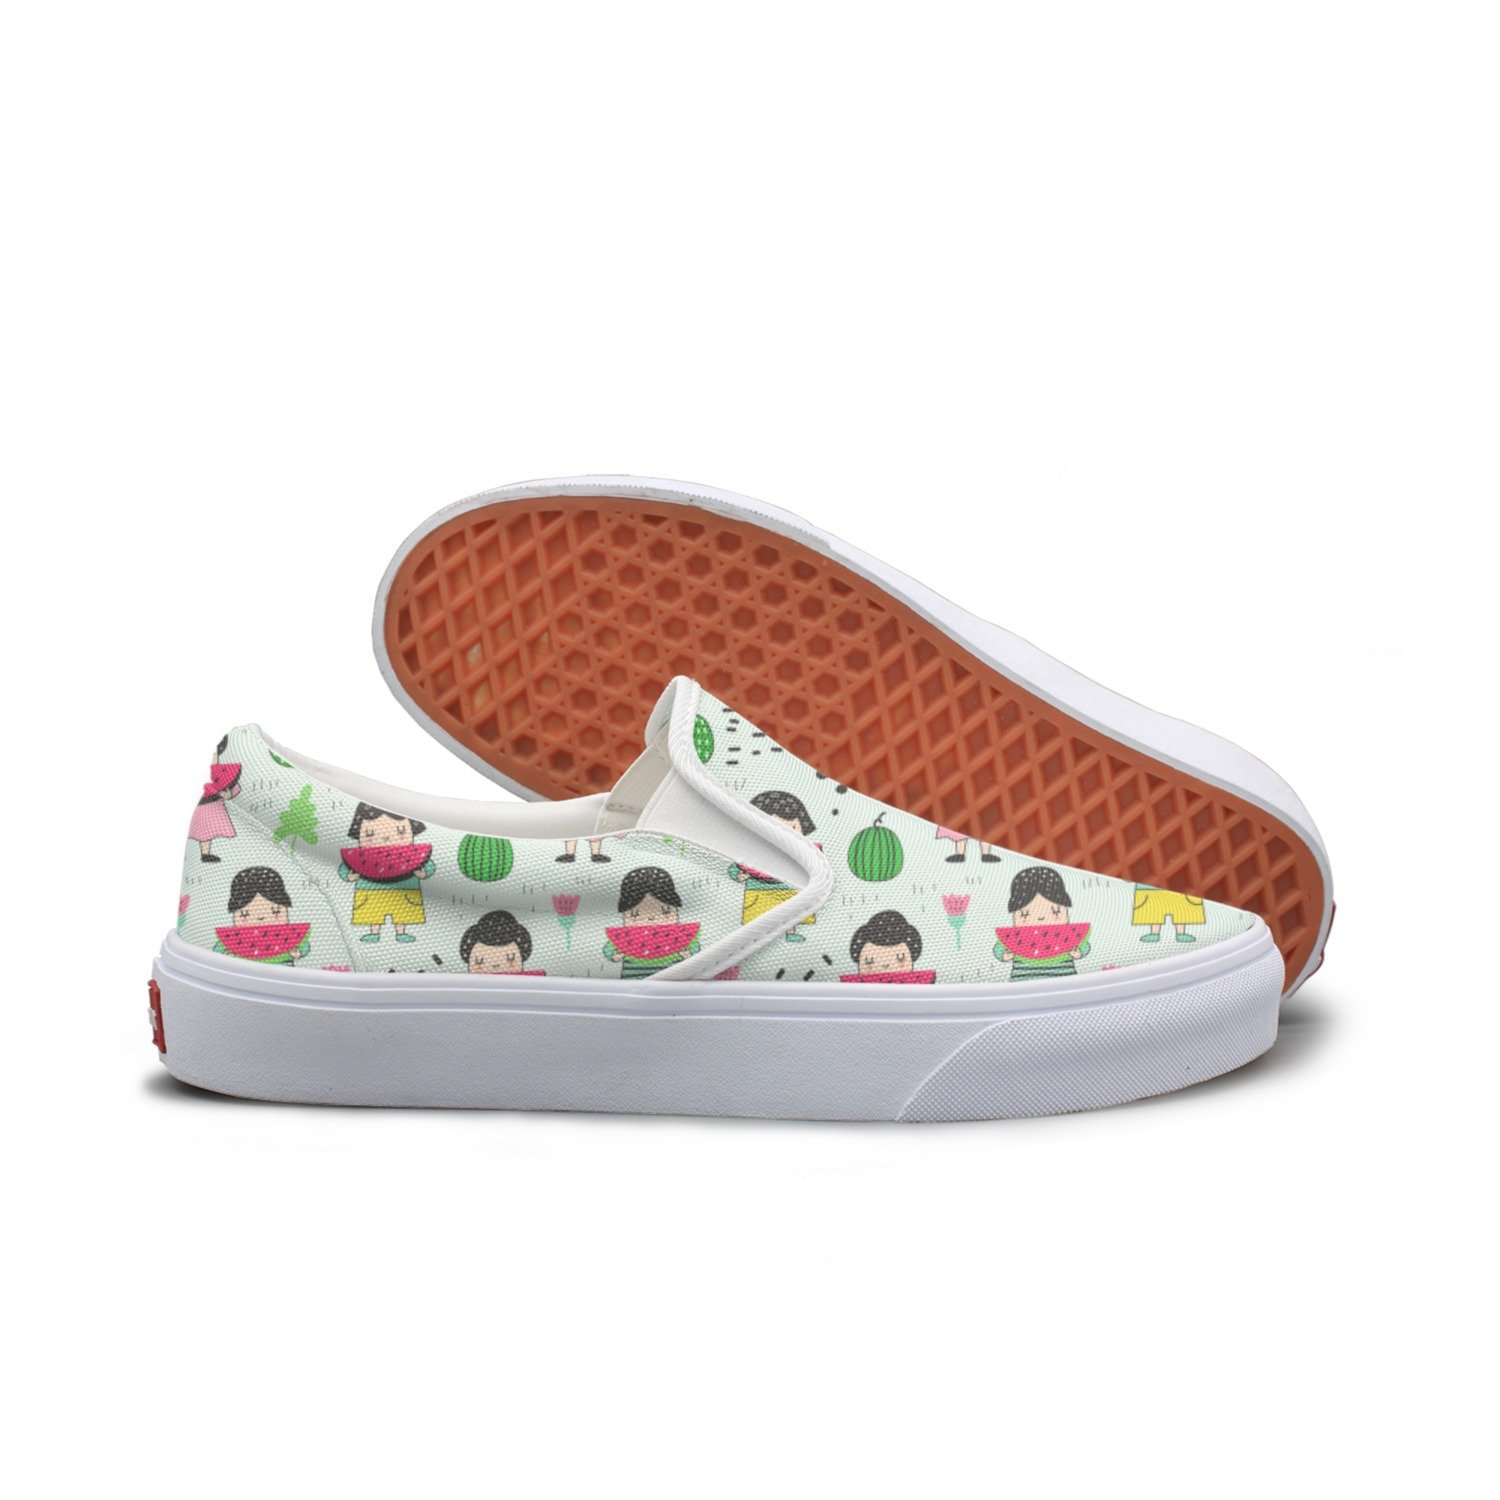 SEERTED Childish Girls and Watermelon Rind Top Sneakers for Women